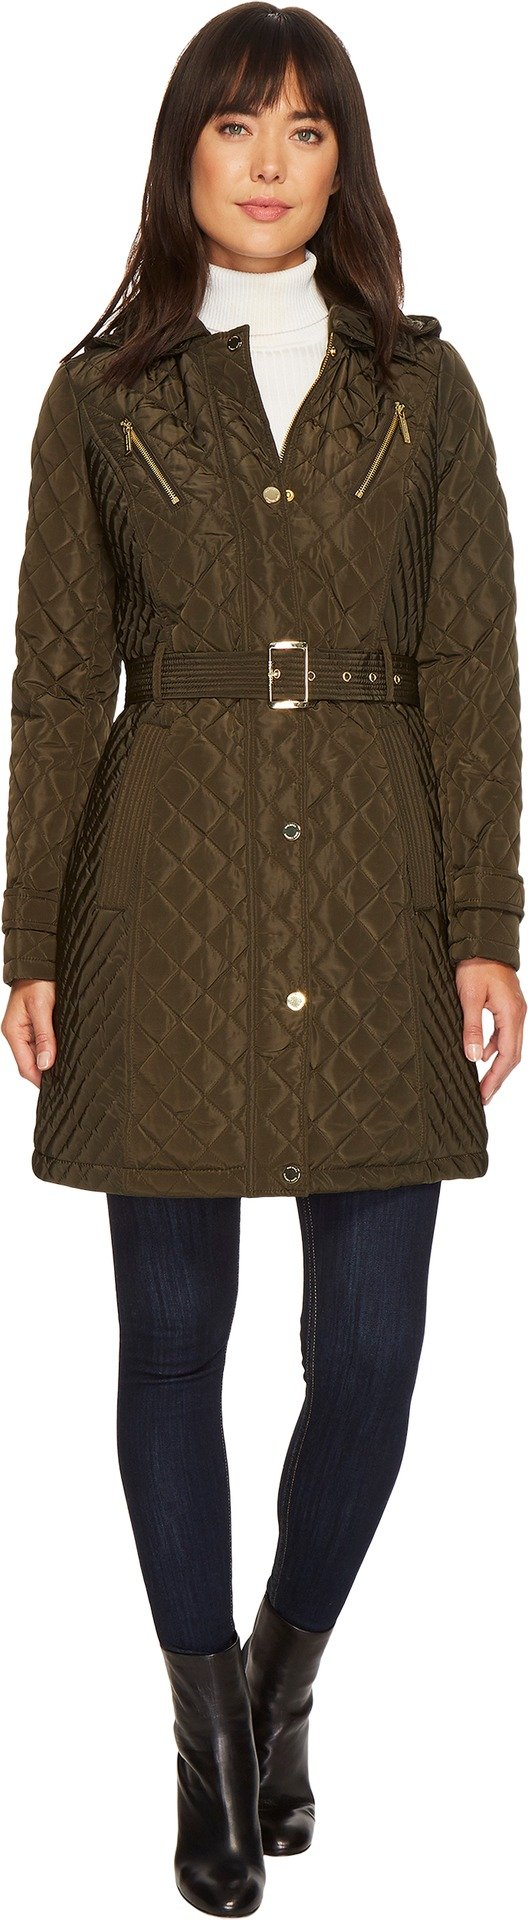 MICHAEL Michael Kors Womens Snap Quilt with Hood M423024CZ Dark Moss LG One Size